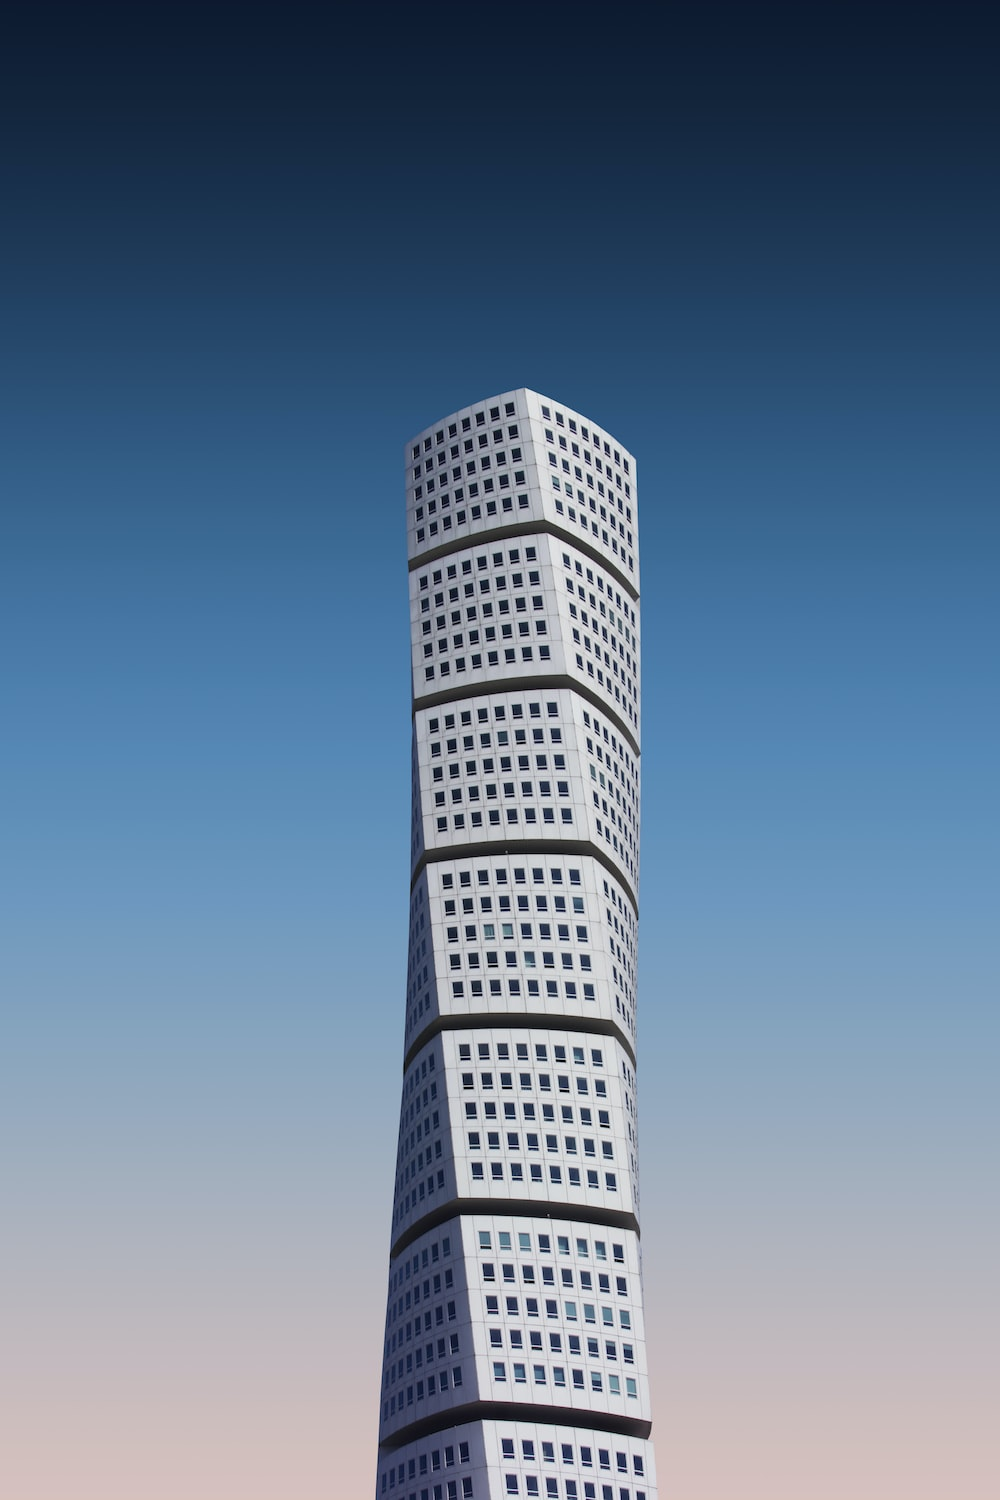 white high-rise building under a blue sky